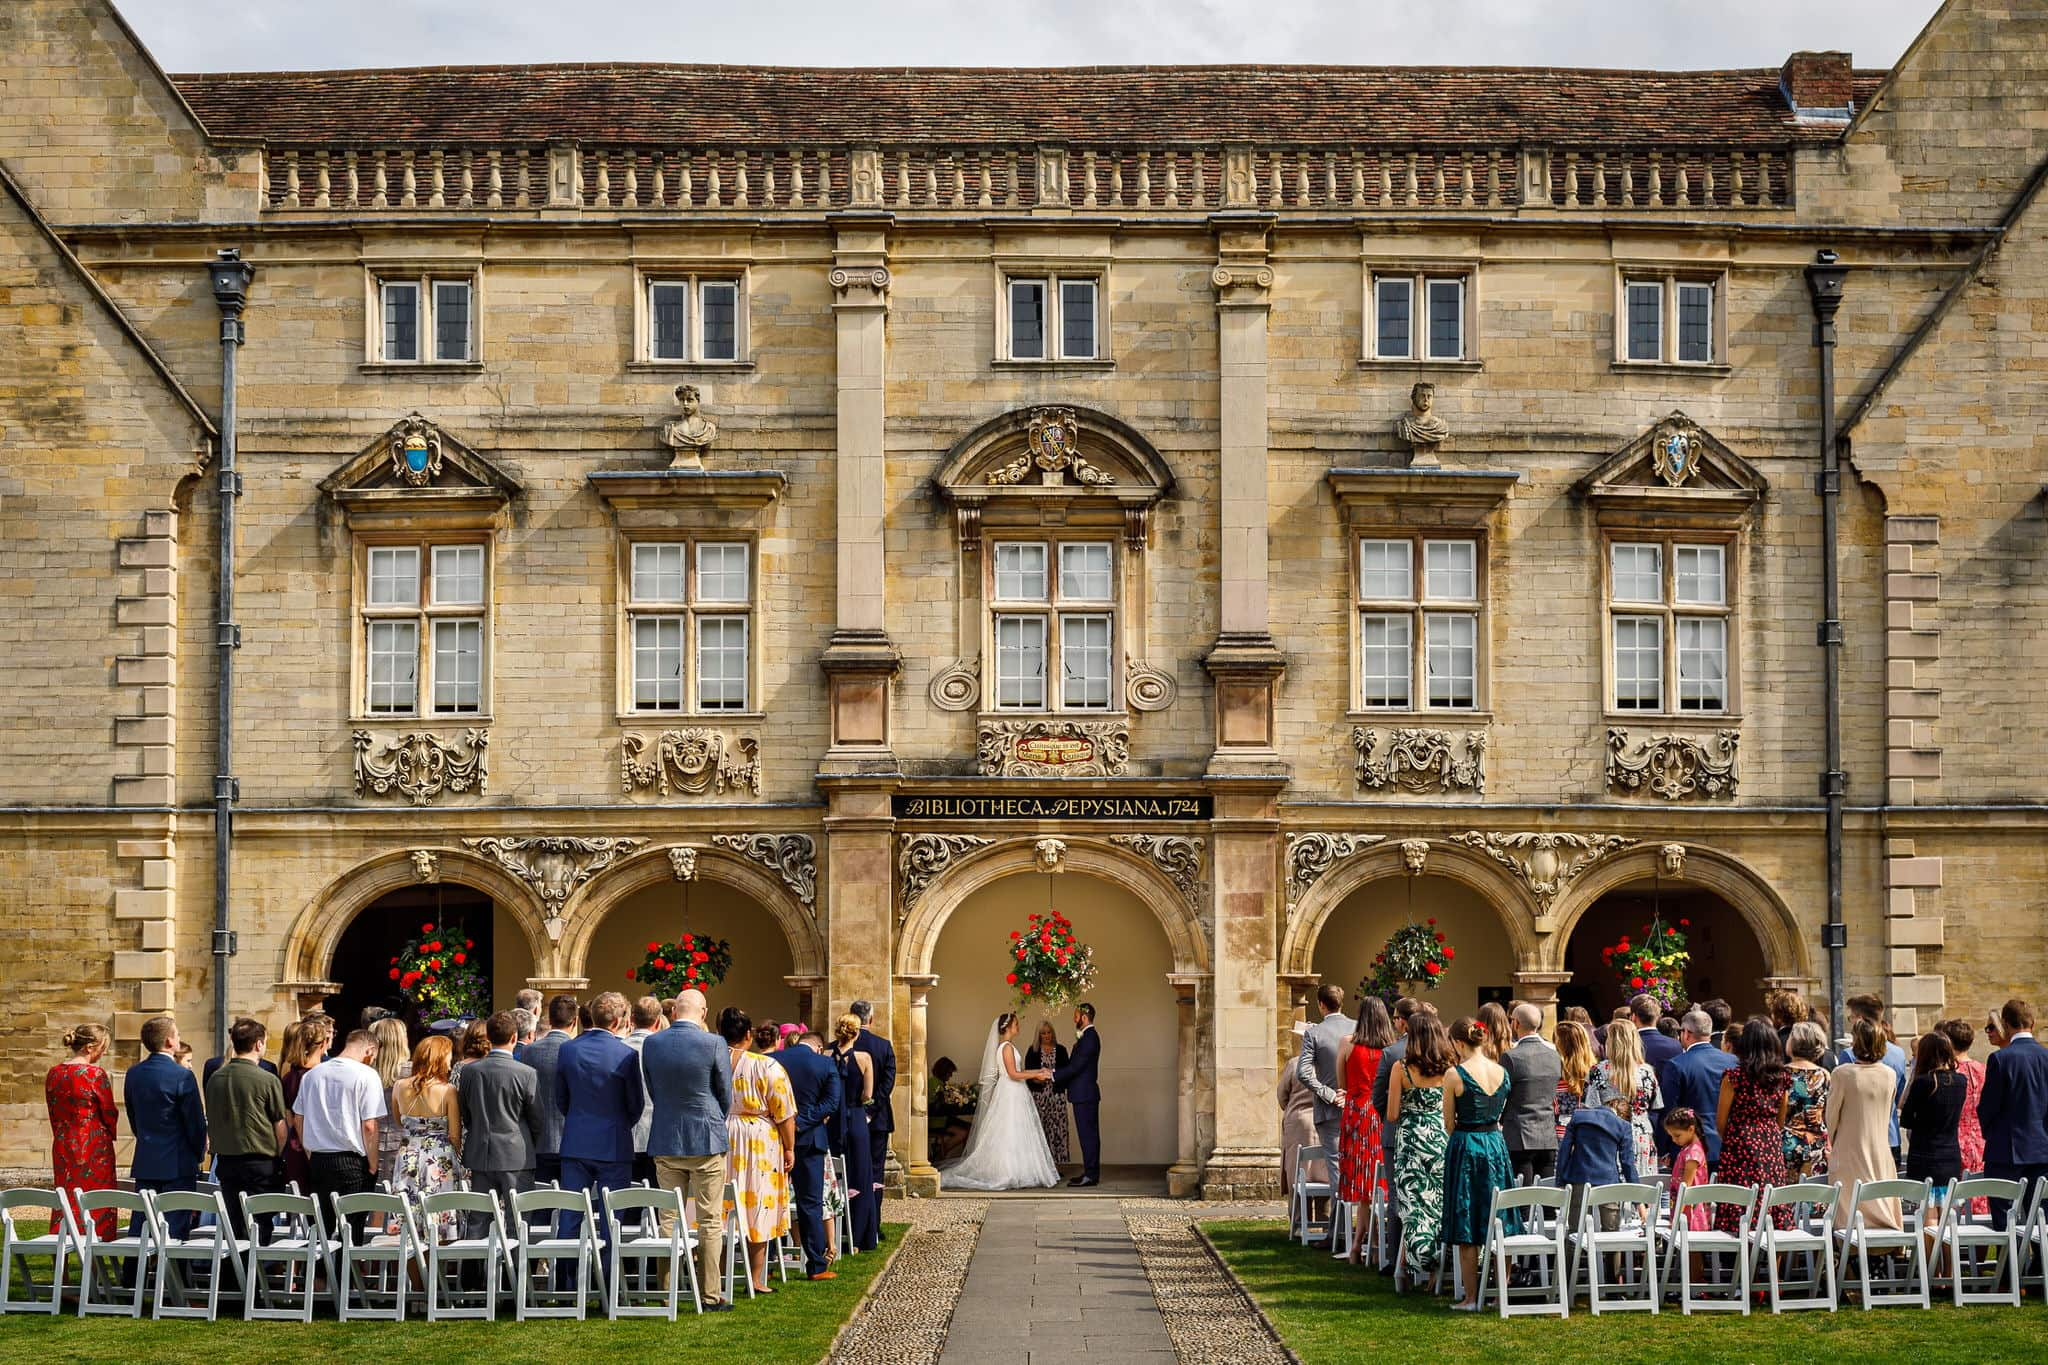 Bride and Groom getting married at Magdalene College Cambridge